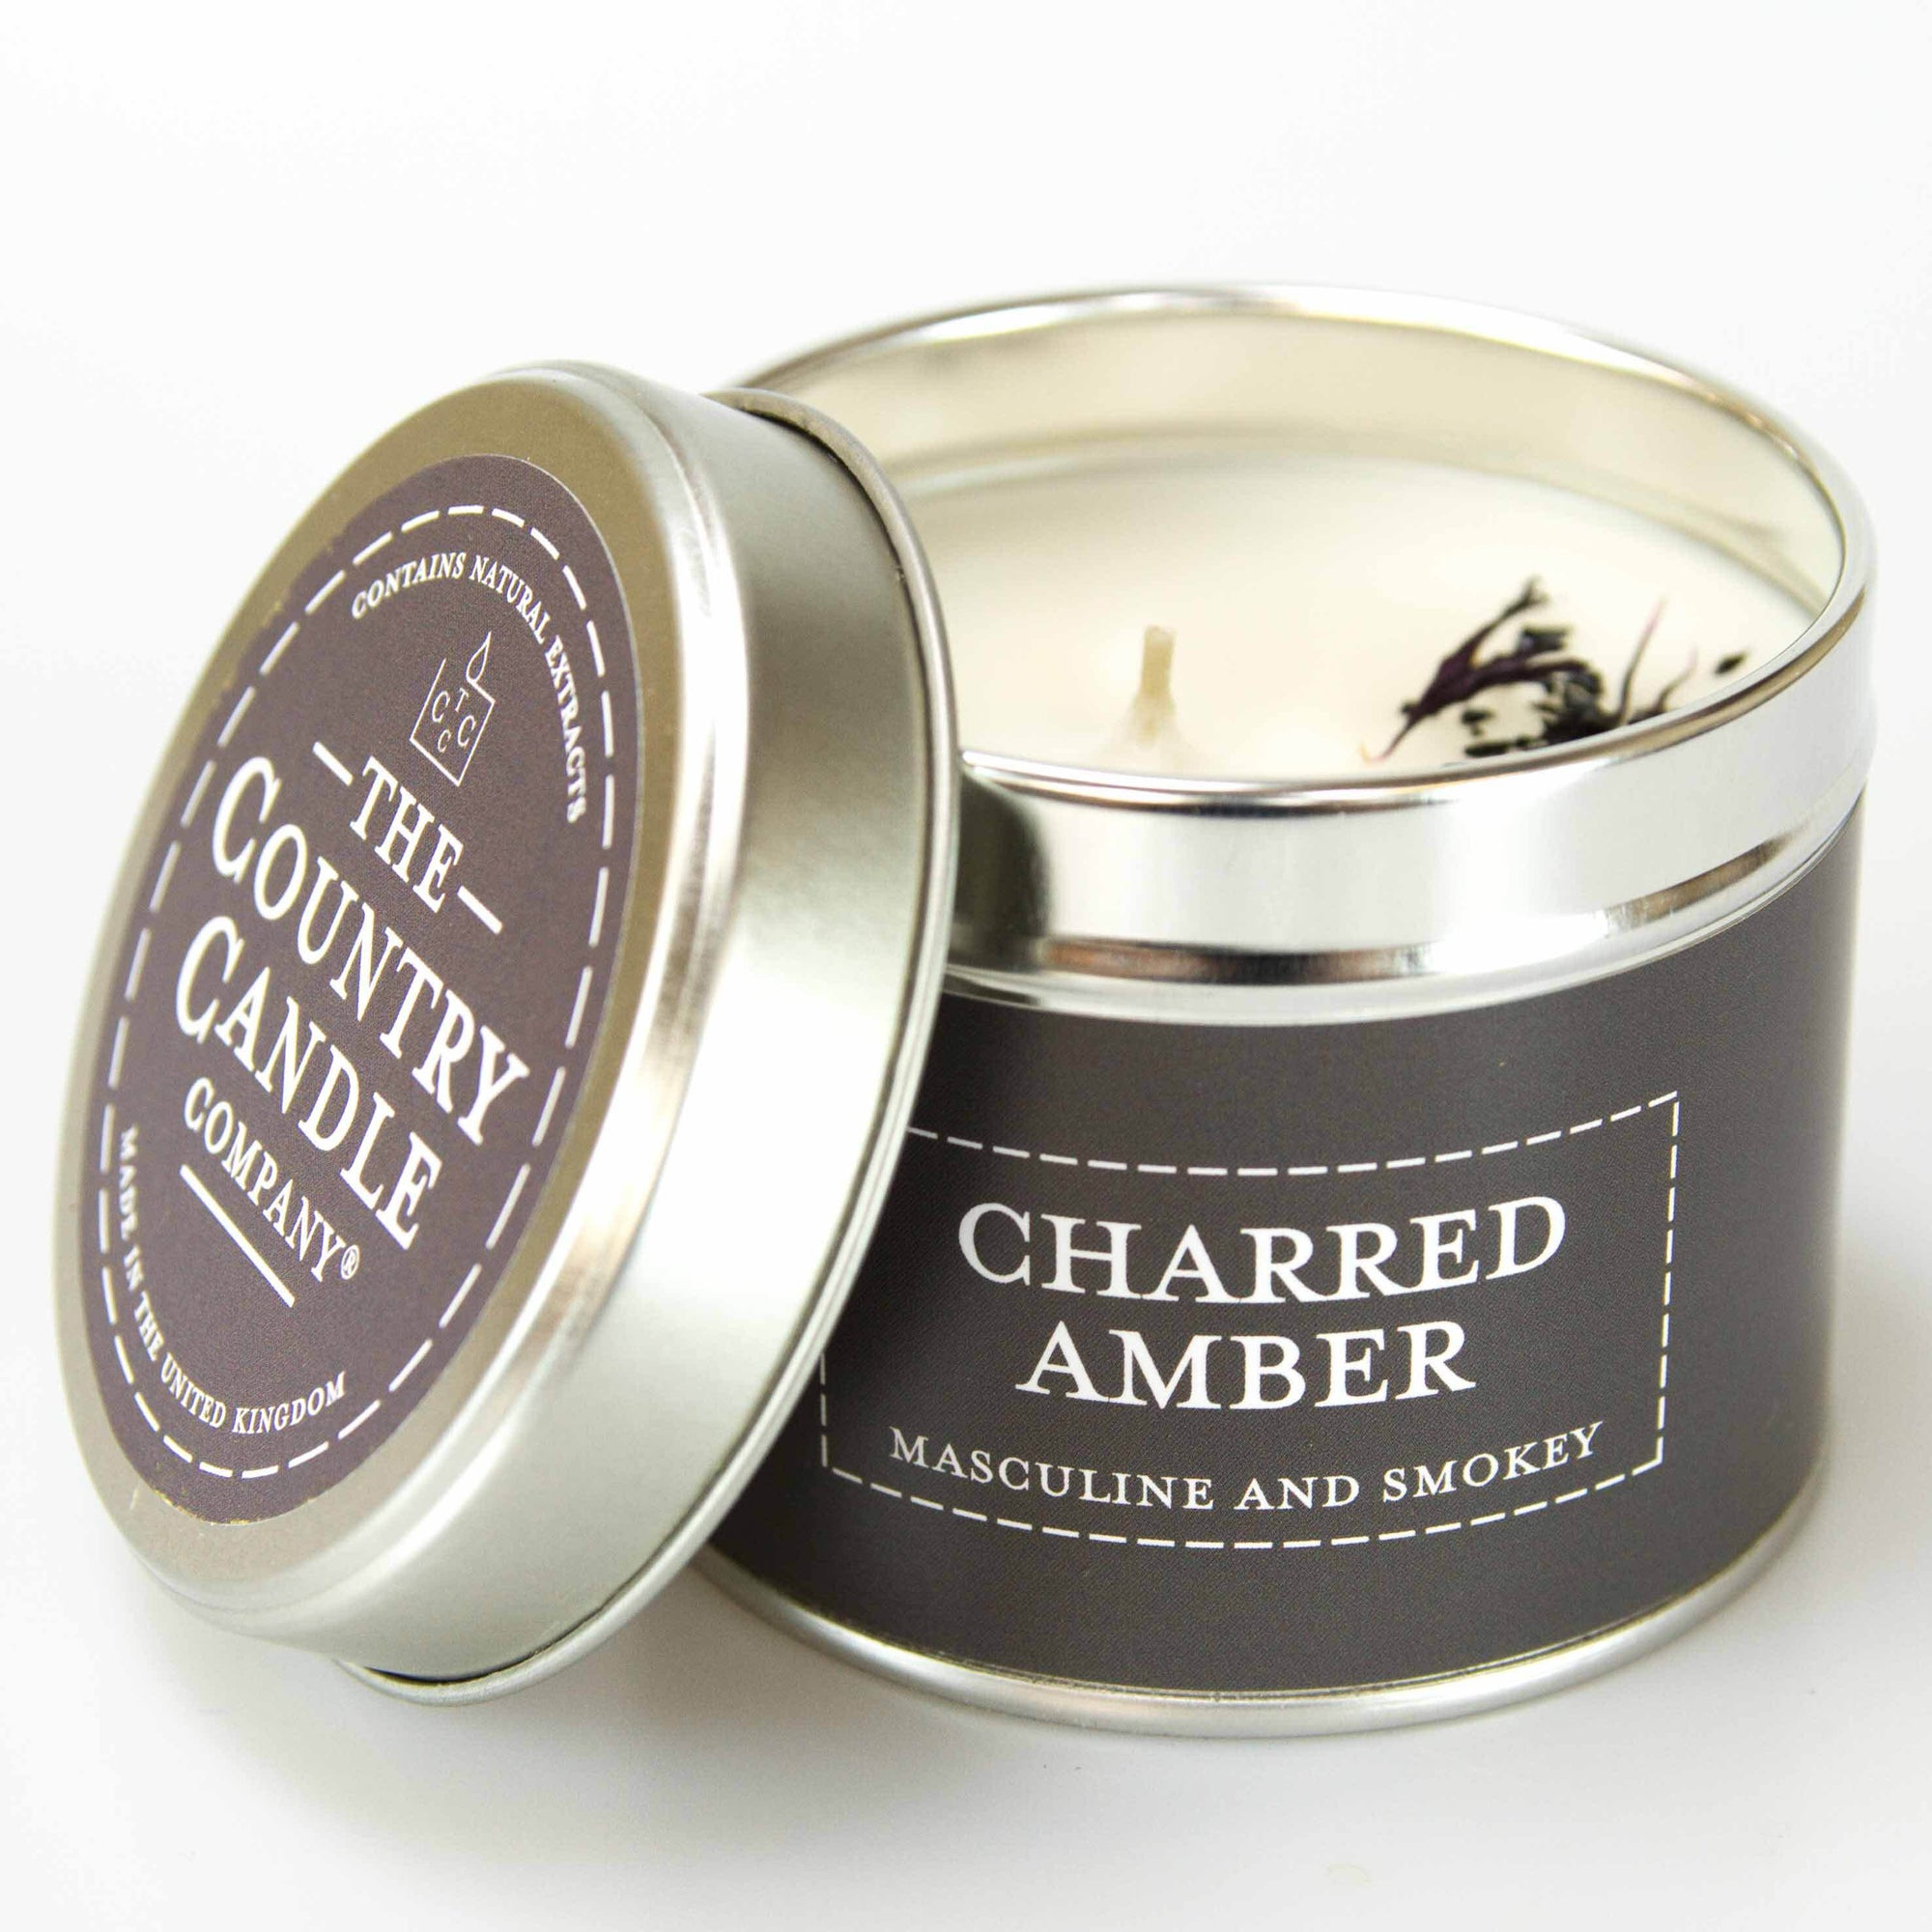 The Country Candle Co. Charred Amber Candle